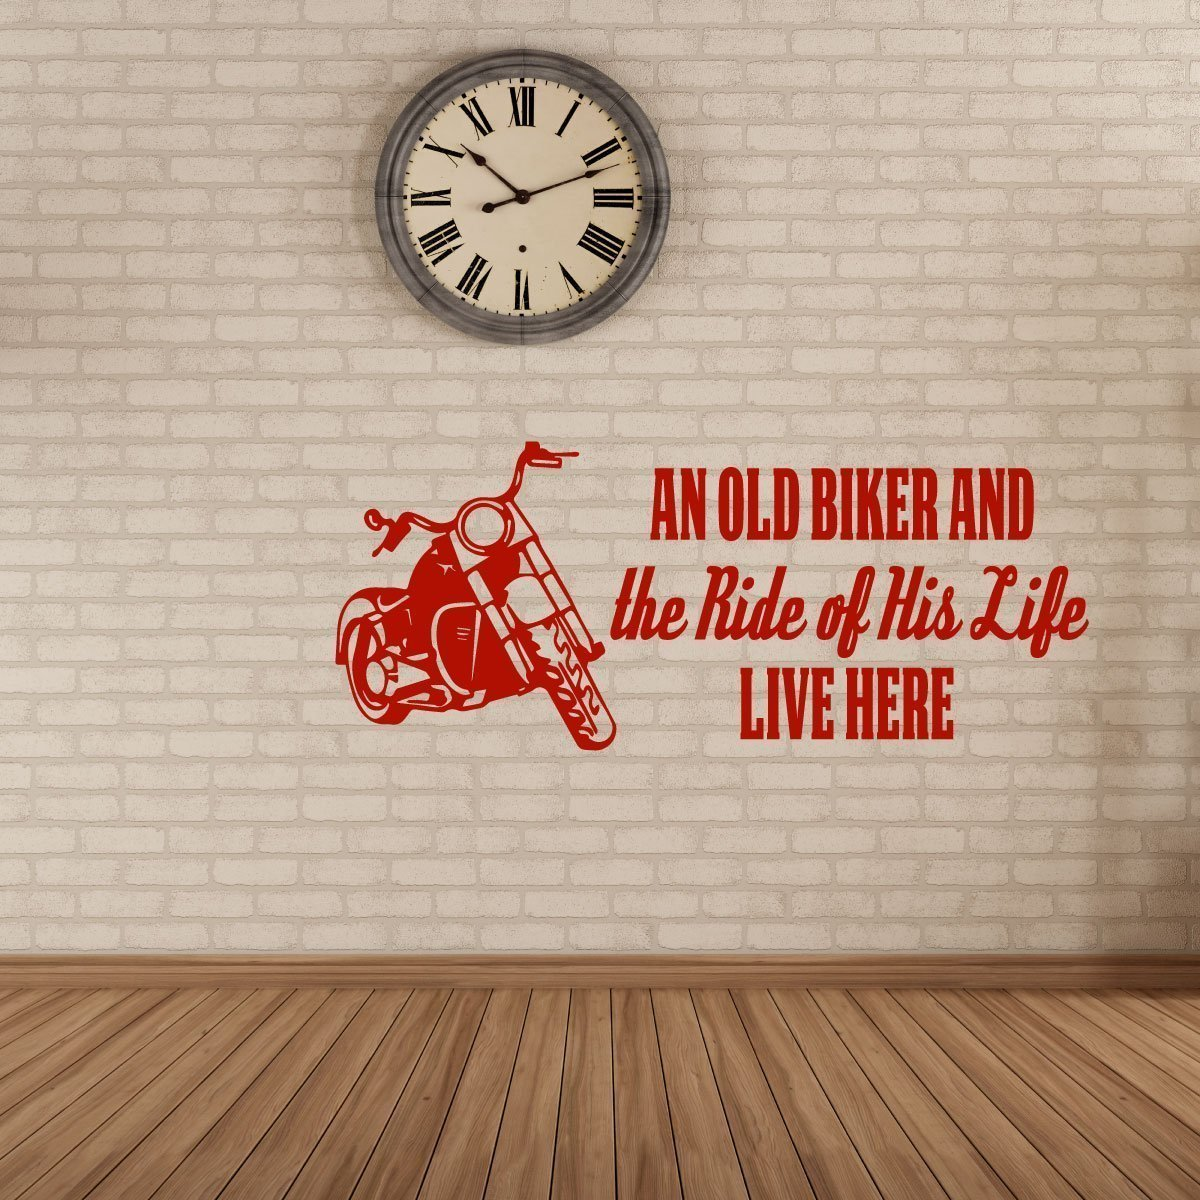 "Red Harley Davidson Vinyl Decals ""The Ride Of His Life"" With Motorcycle Image For Home Decor"